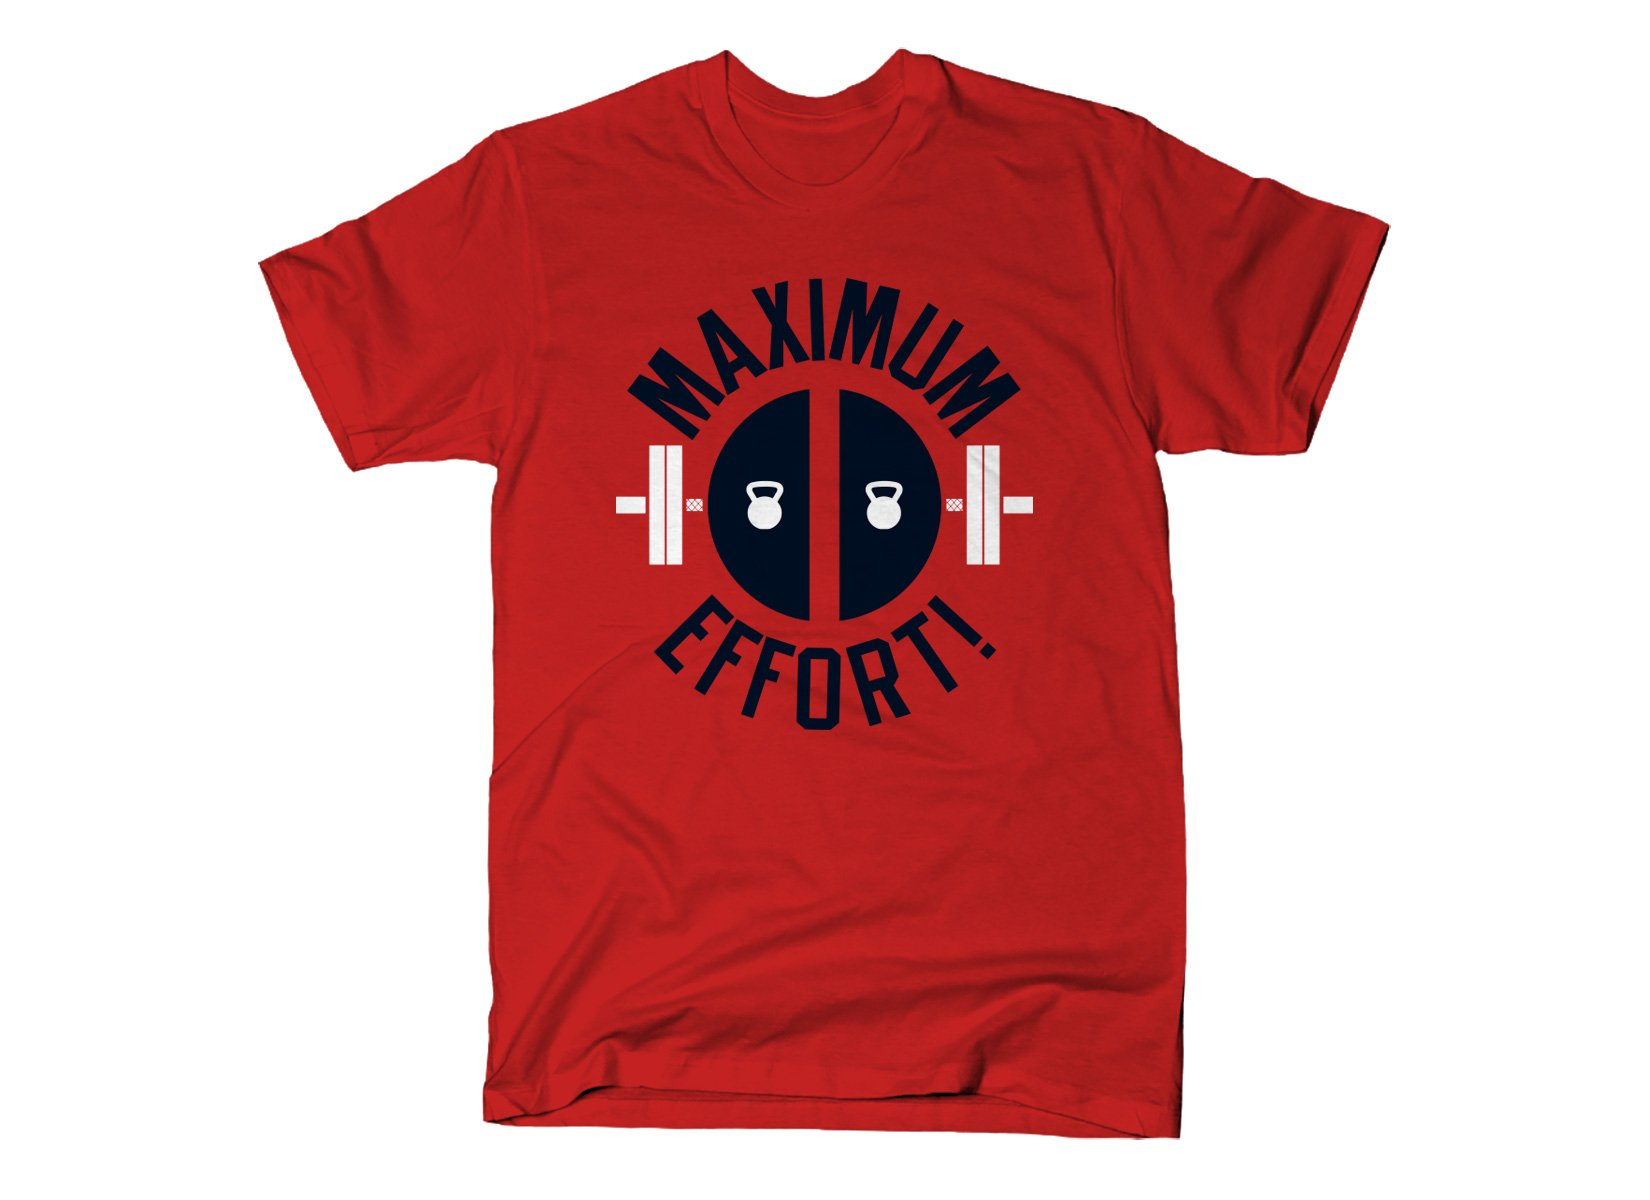 Maximum Effort! on Mens T-Shirt